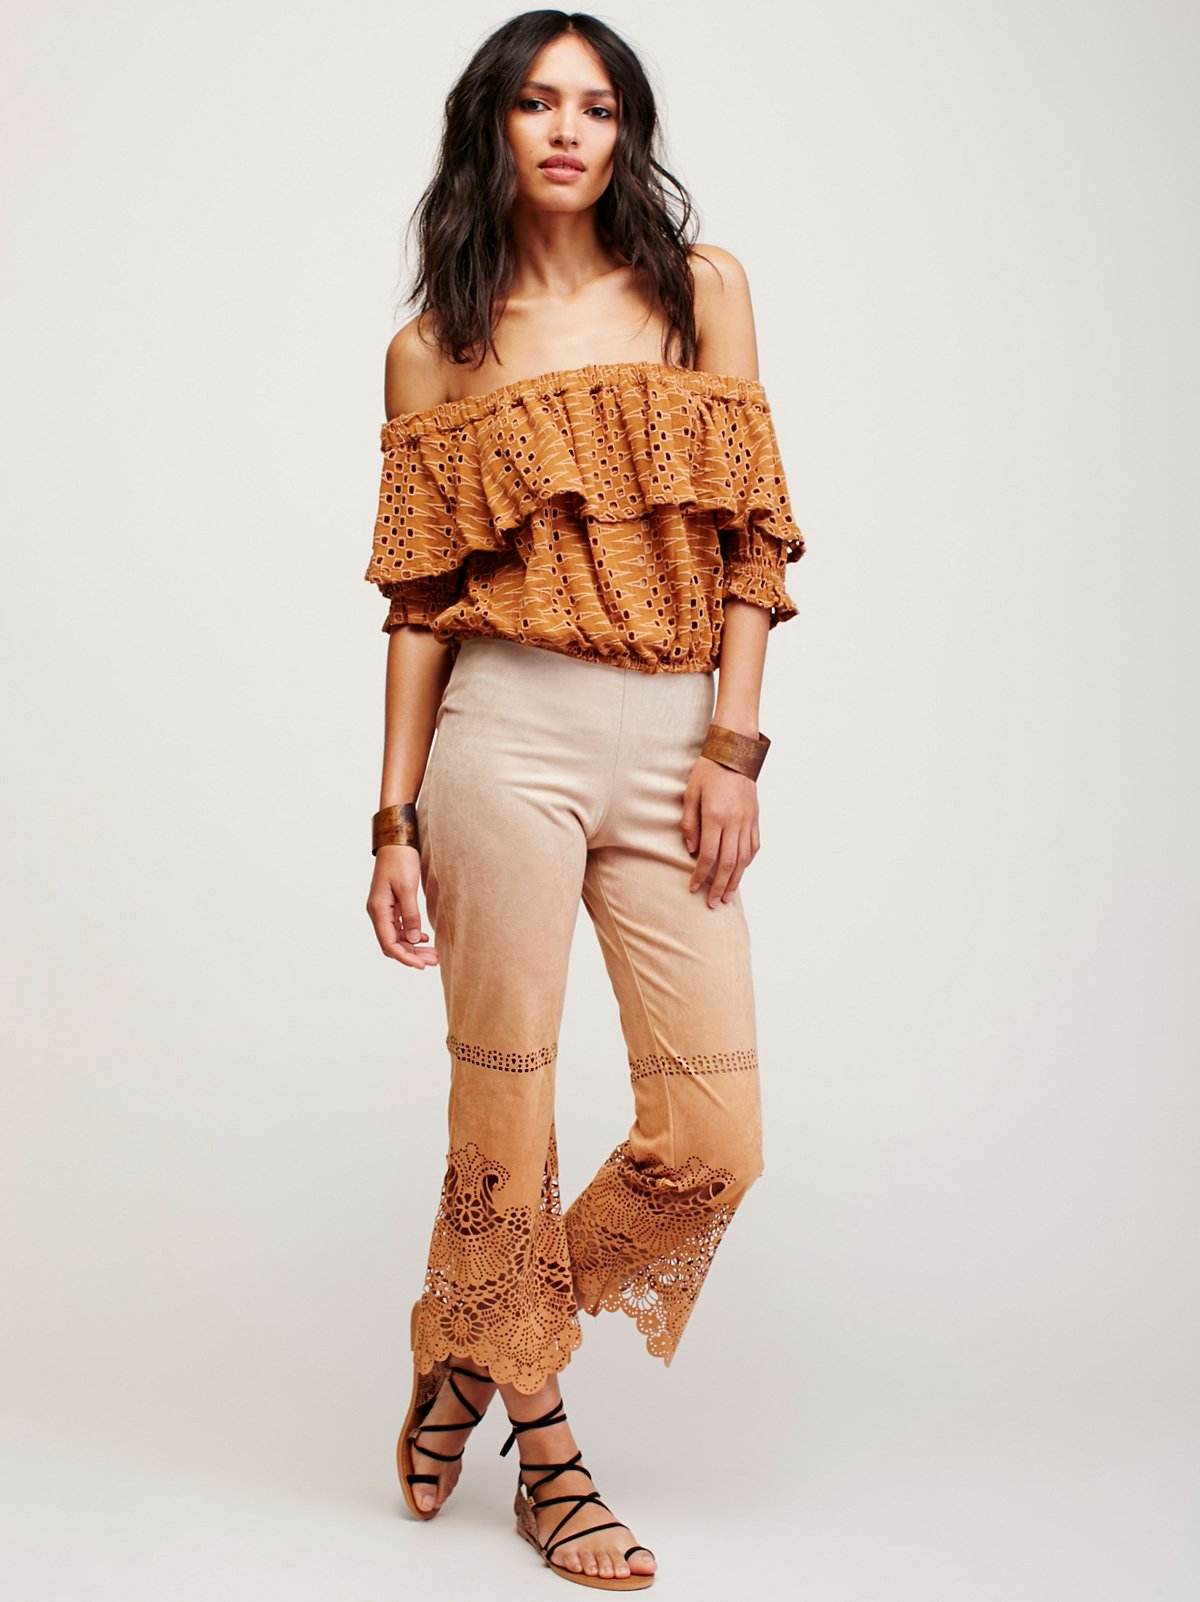 Beyond Love Cutout Pant